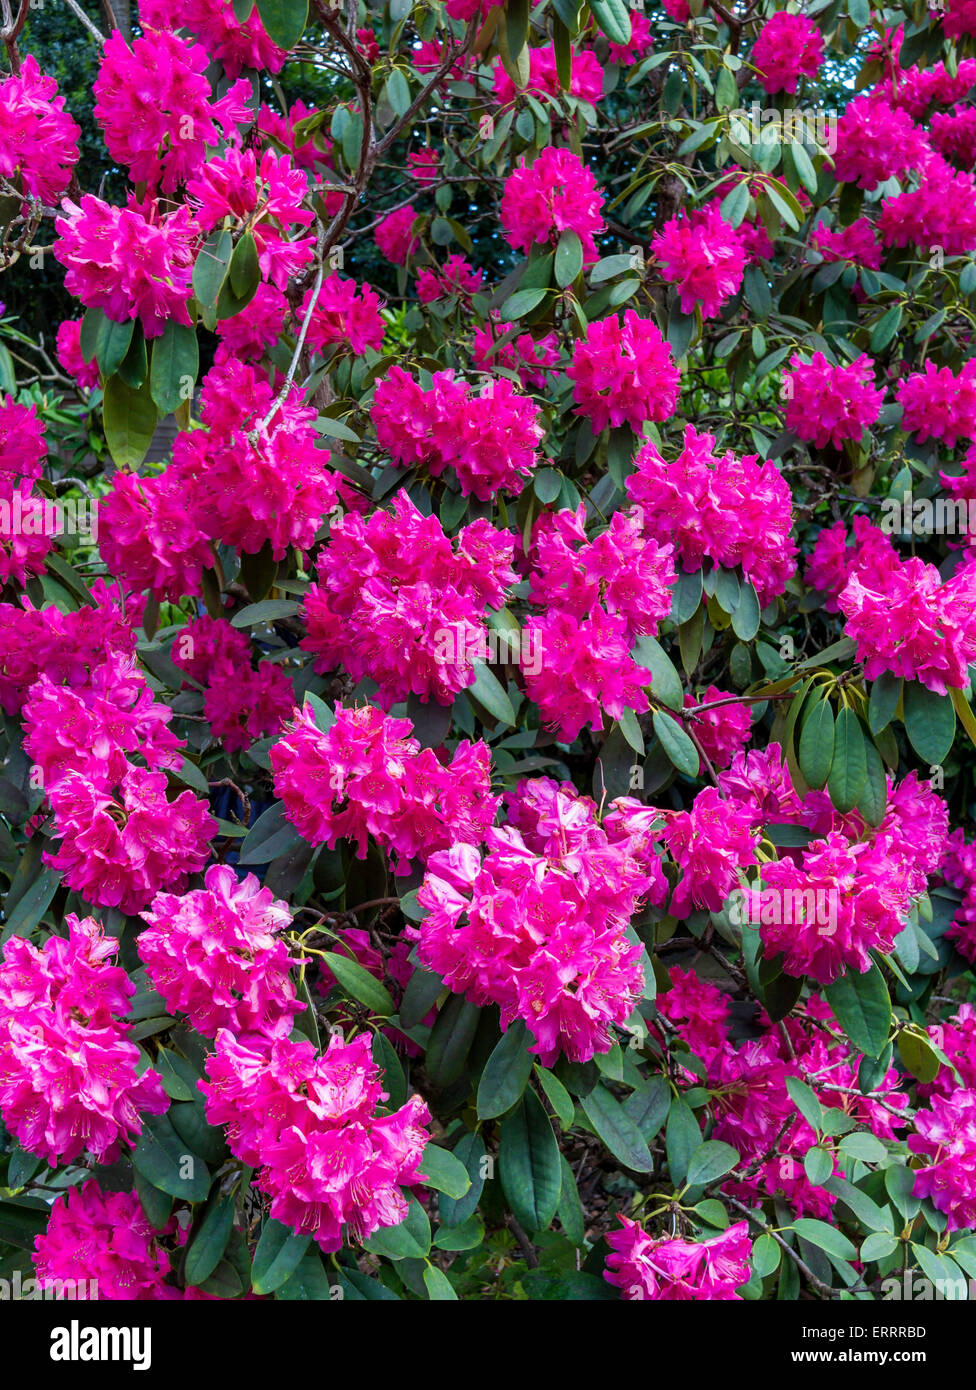 Garden flower close up of a large pink rhododendron bush stock photo garden flower close up of a large pink rhododendron bush mightylinksfo